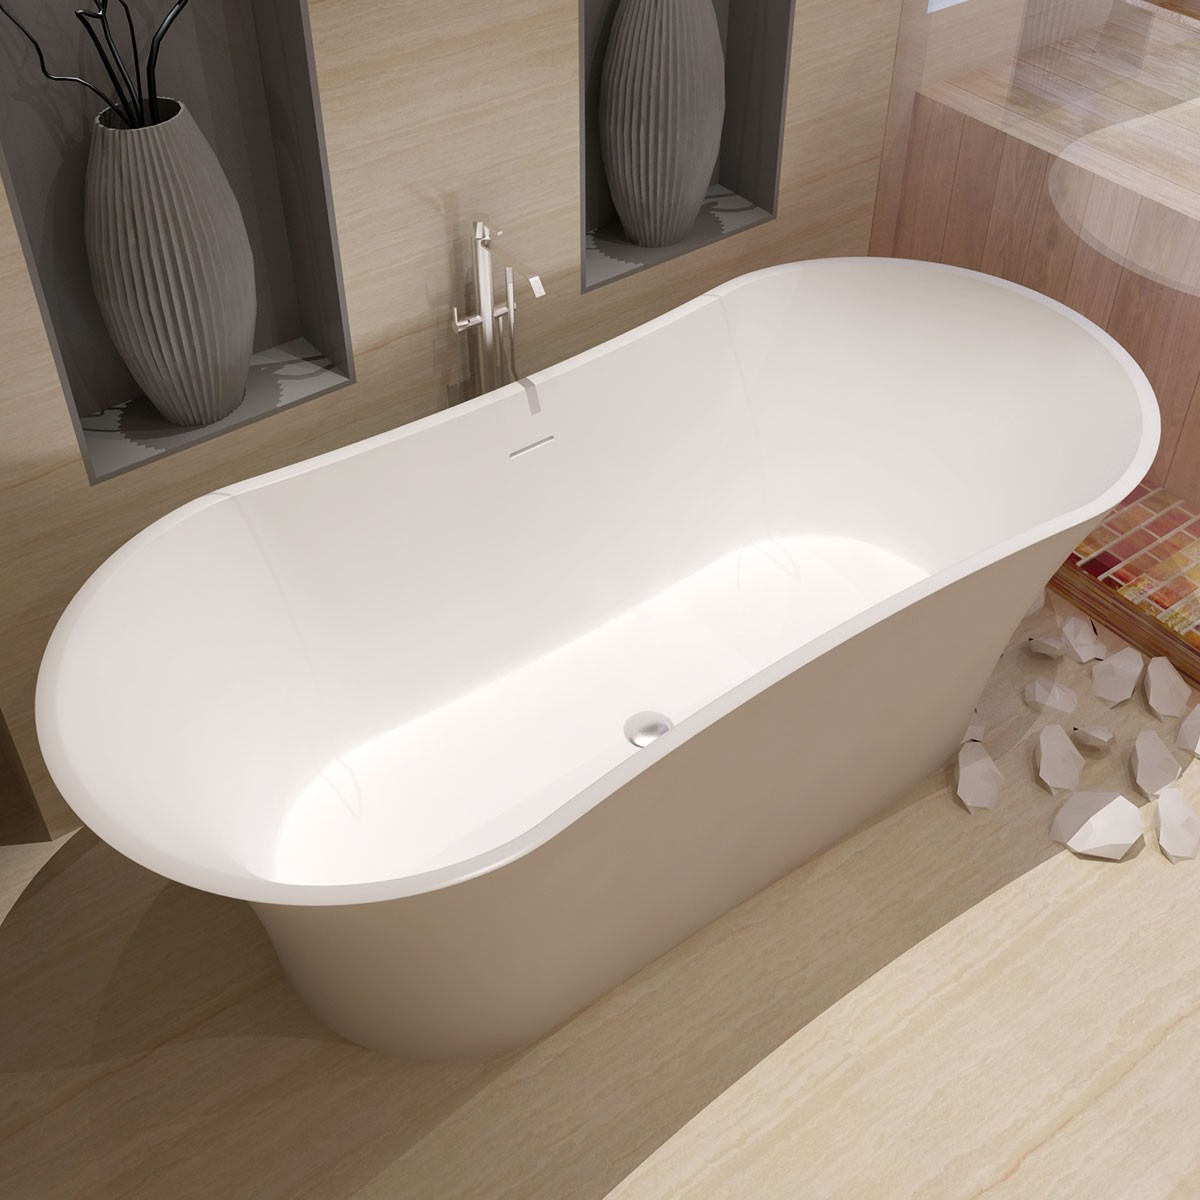 64 In Double Slipper Synthetic Stone Freestanding Bathtub - Matte White (DK-HA8601)